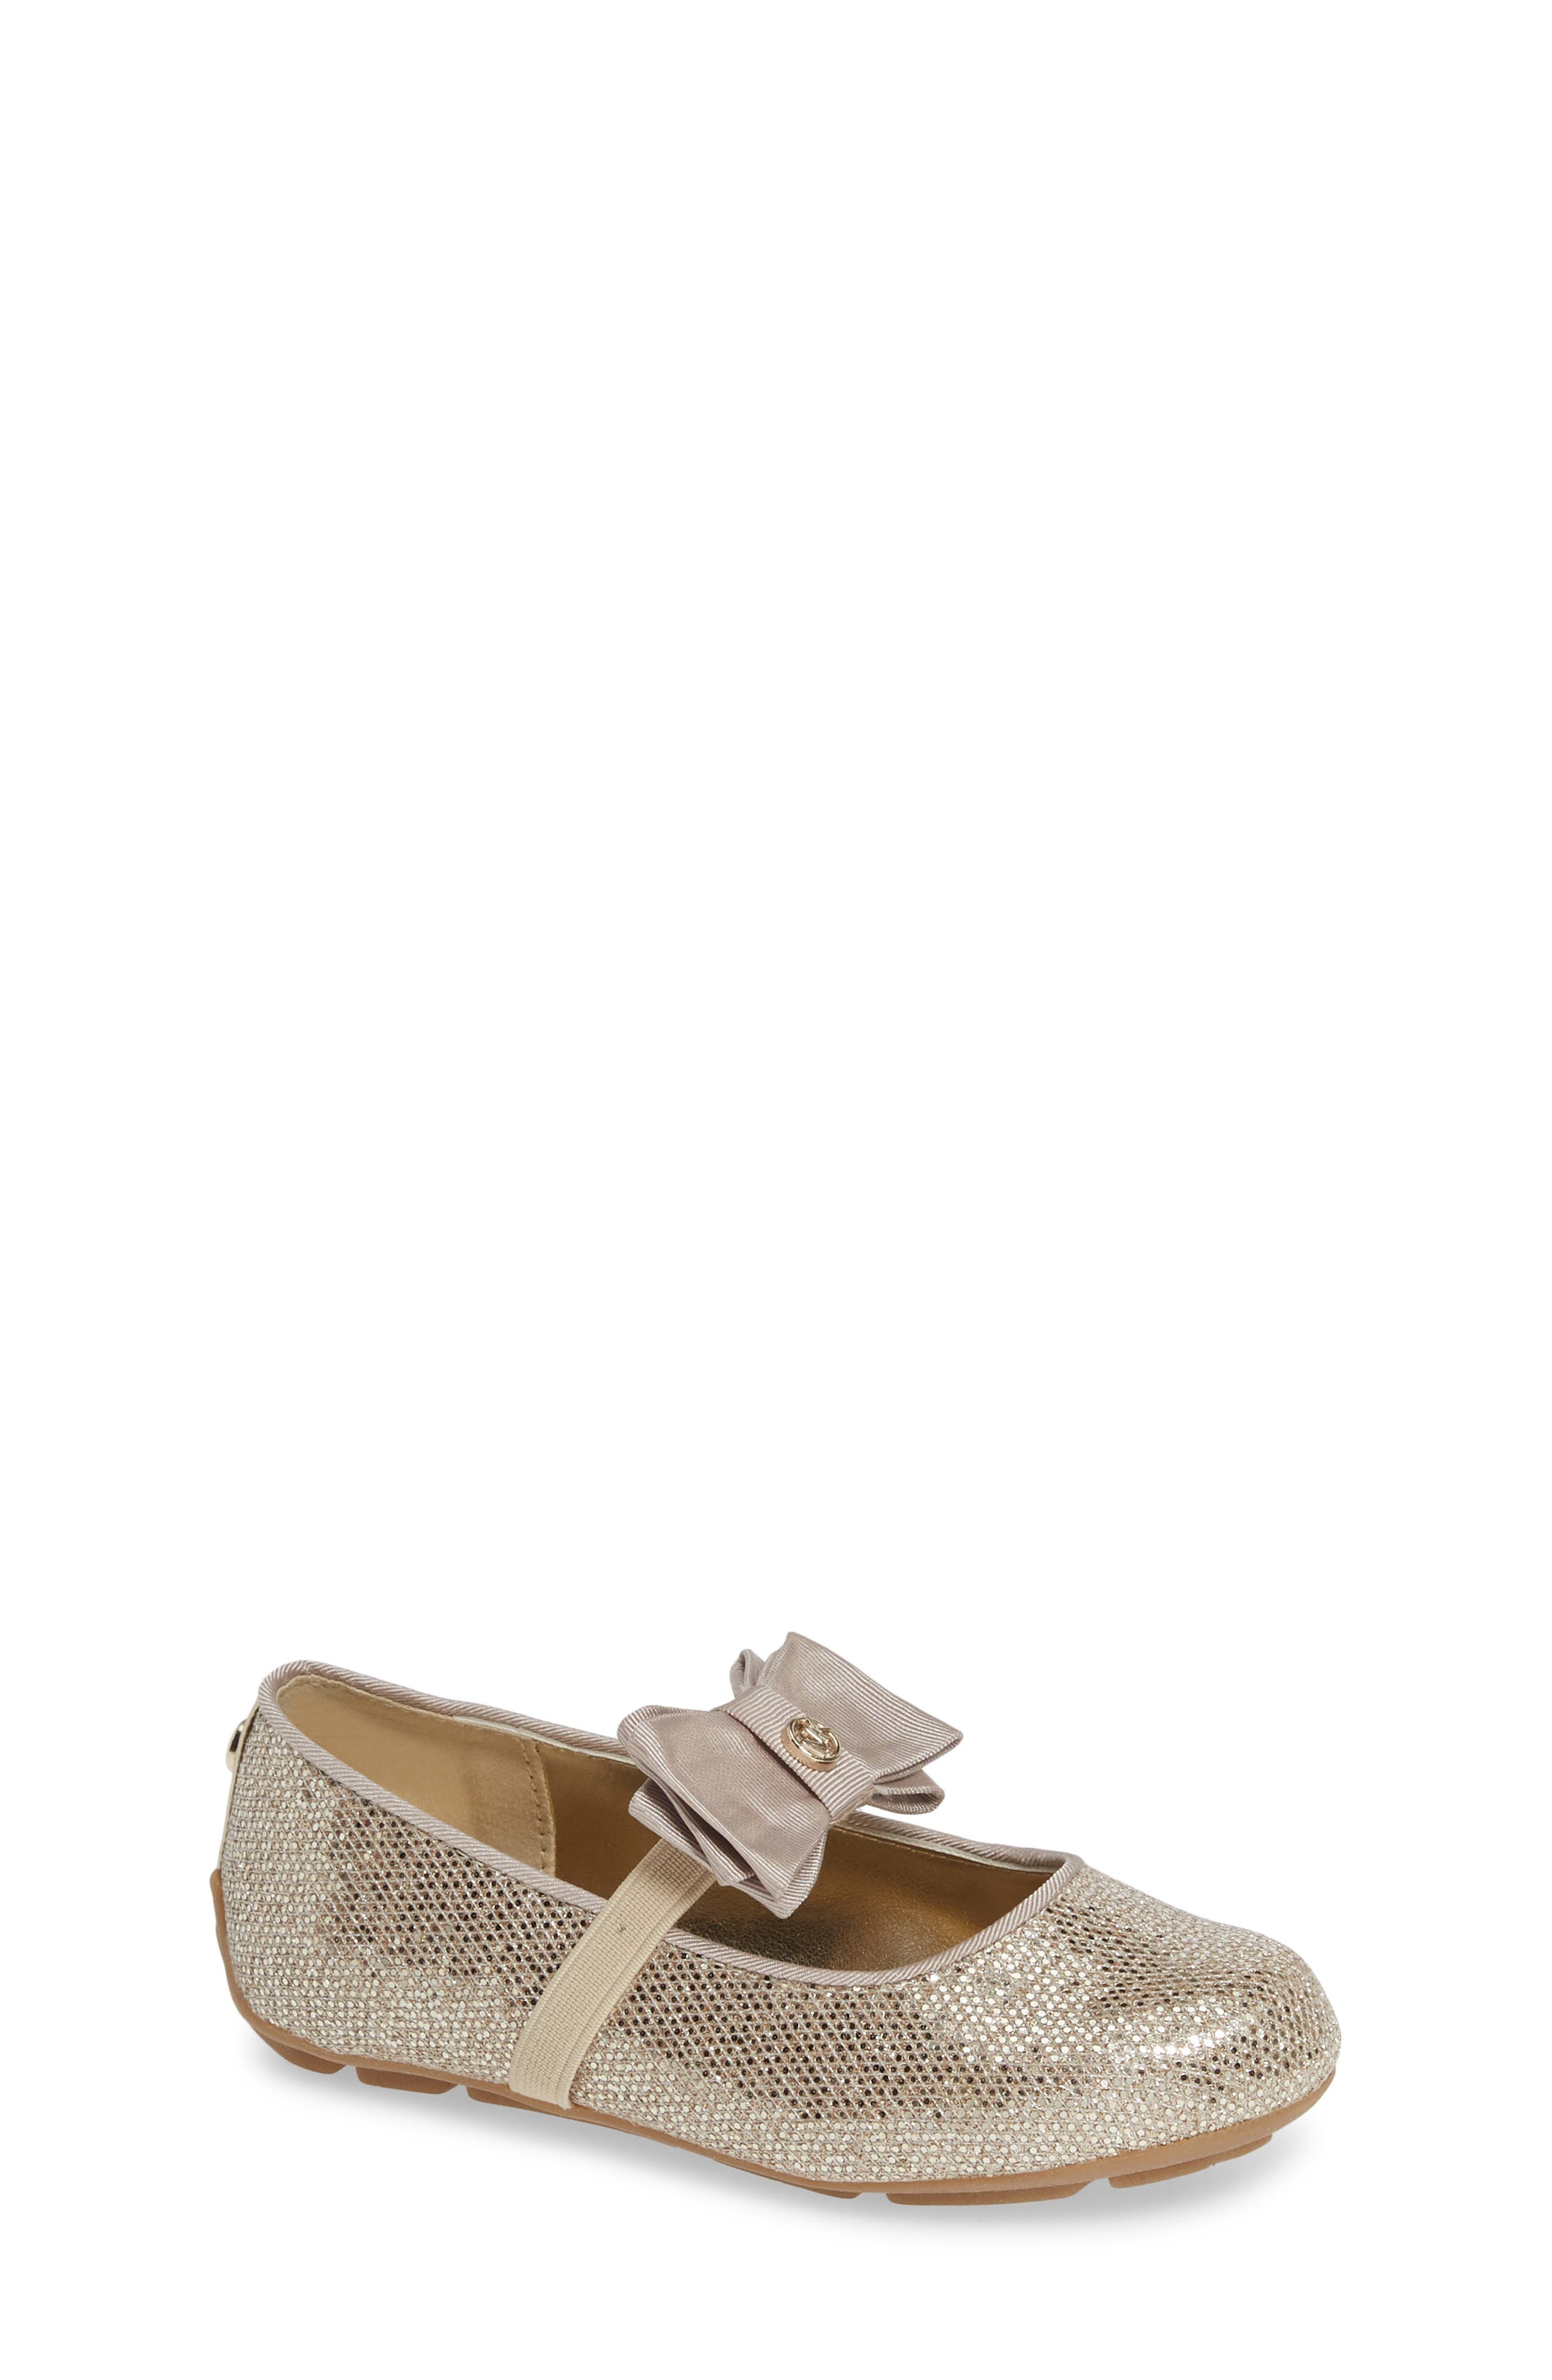 Rover Day Sparkle Ballet Flat,                             Main thumbnail 1, color,                             SAND